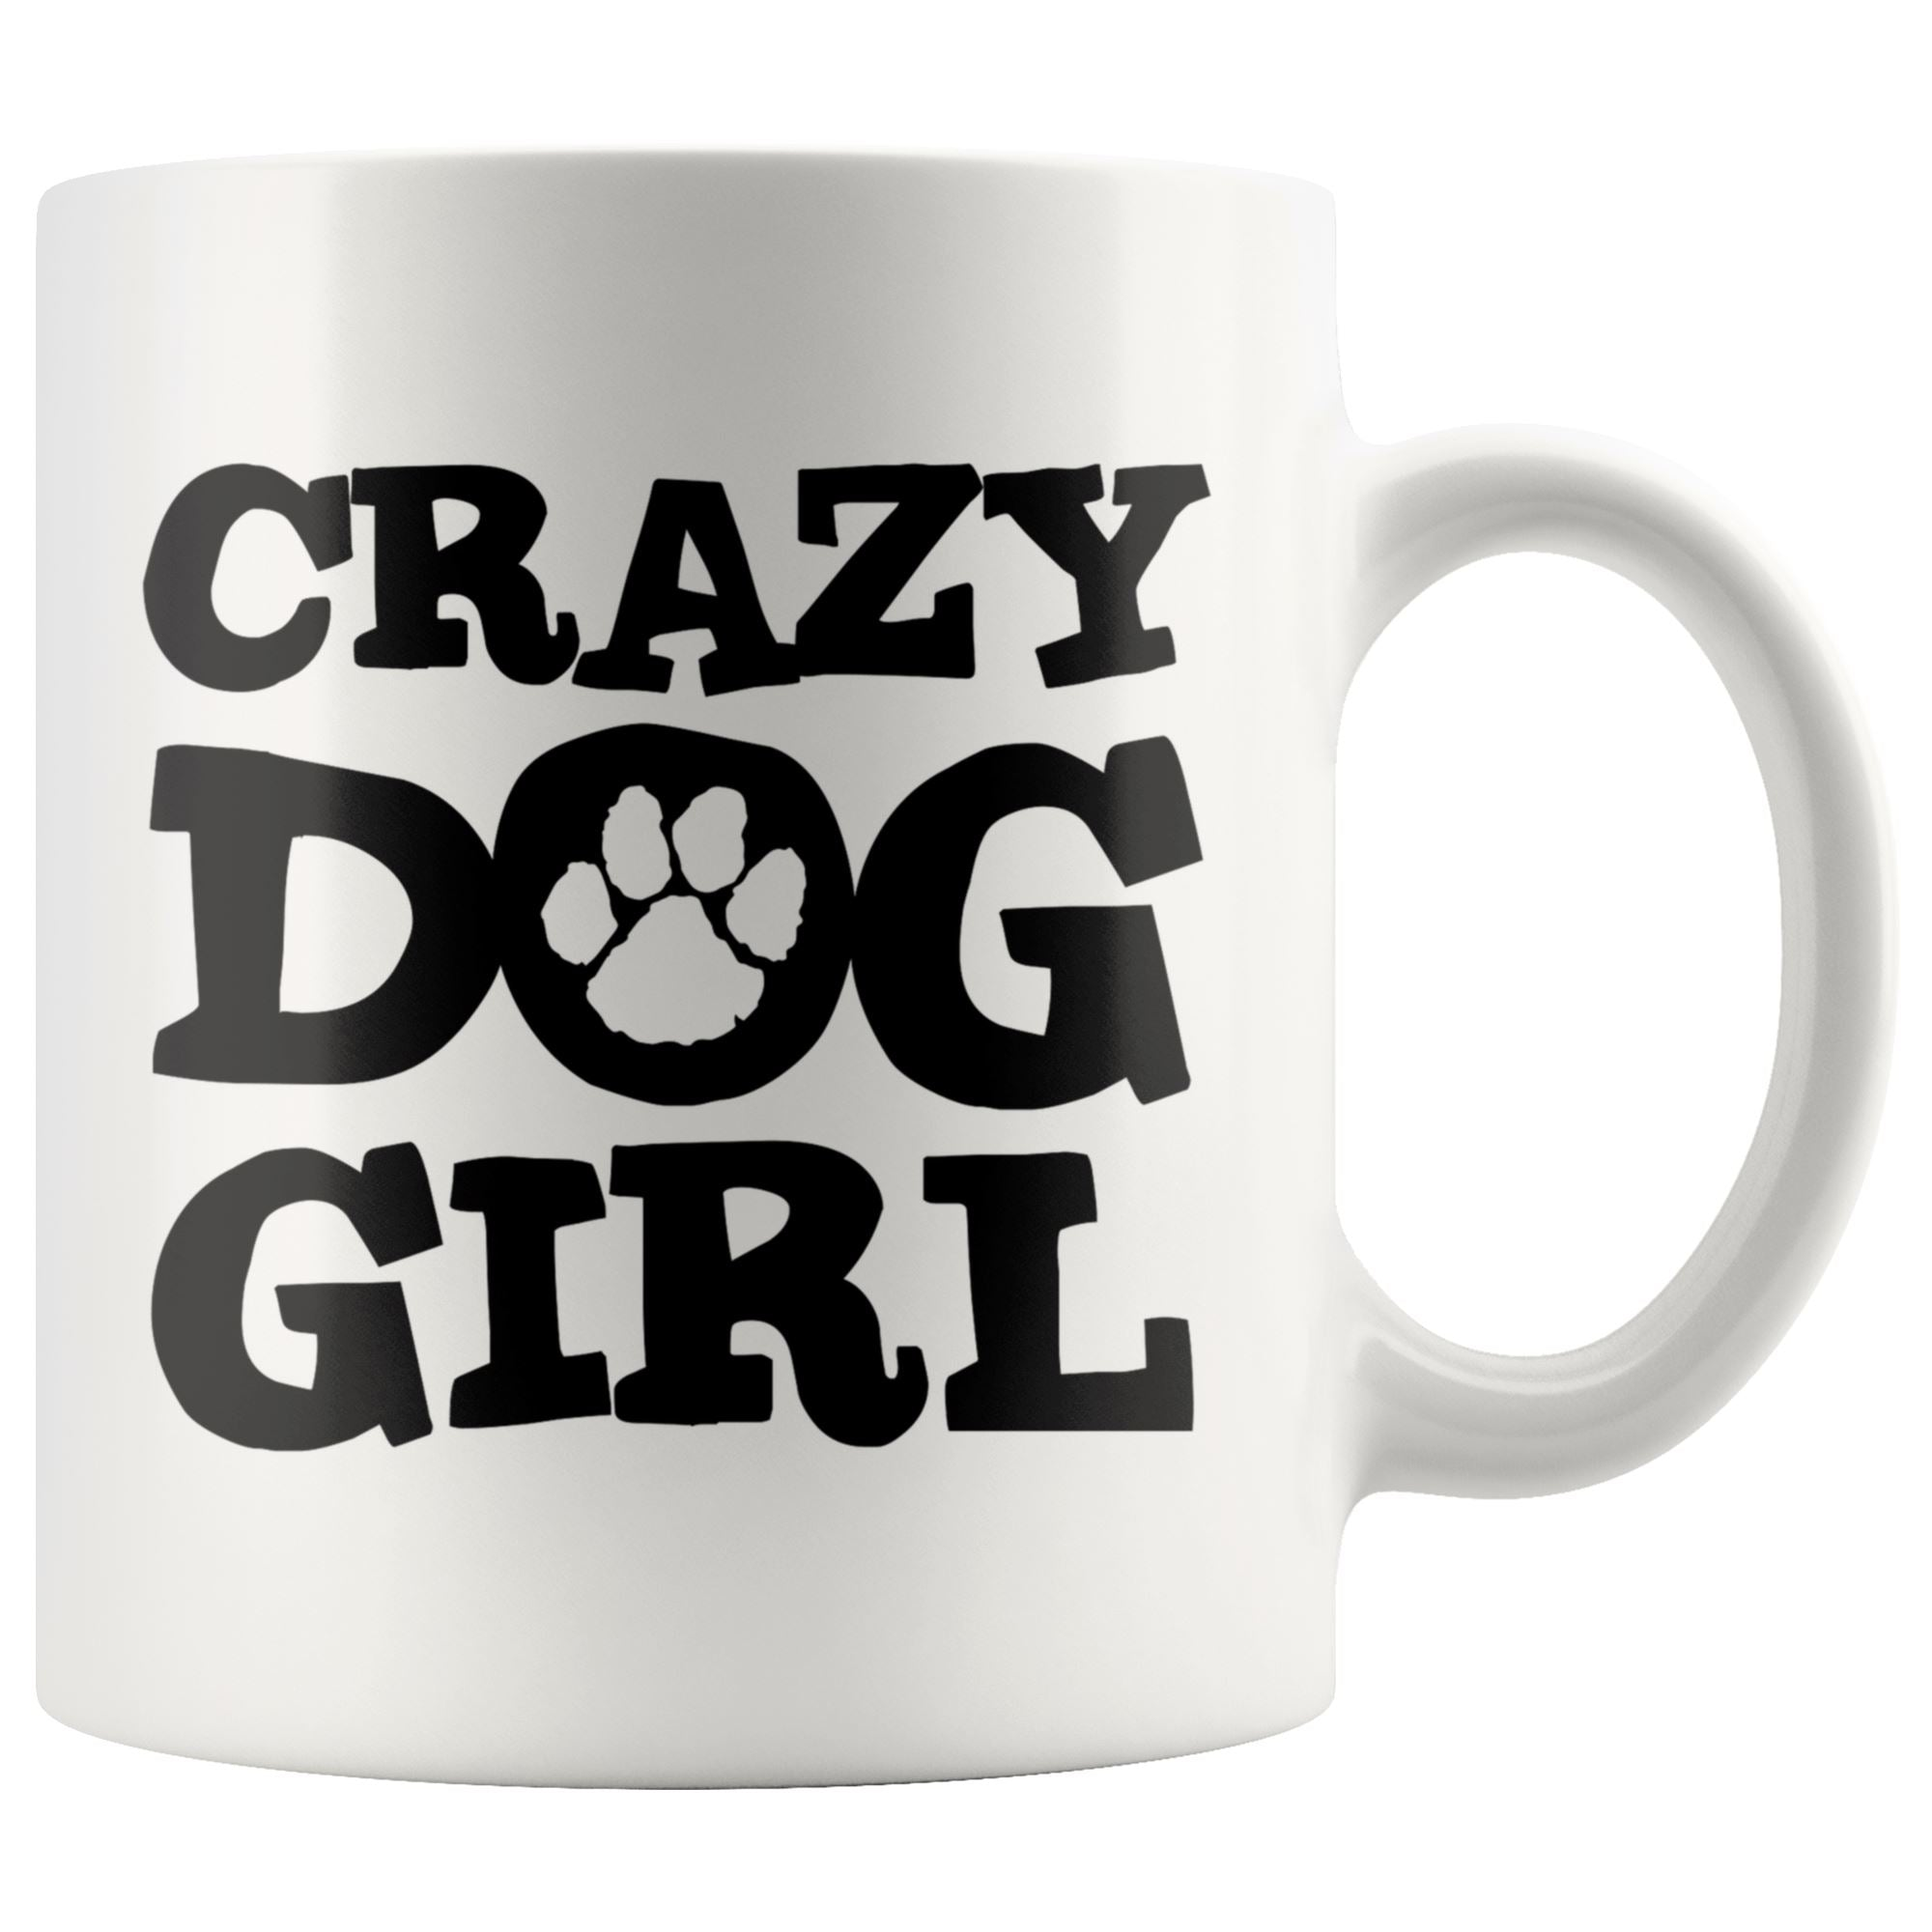 Crazy Dog Girl Mug Drinkware teelaunch 11oz Mug